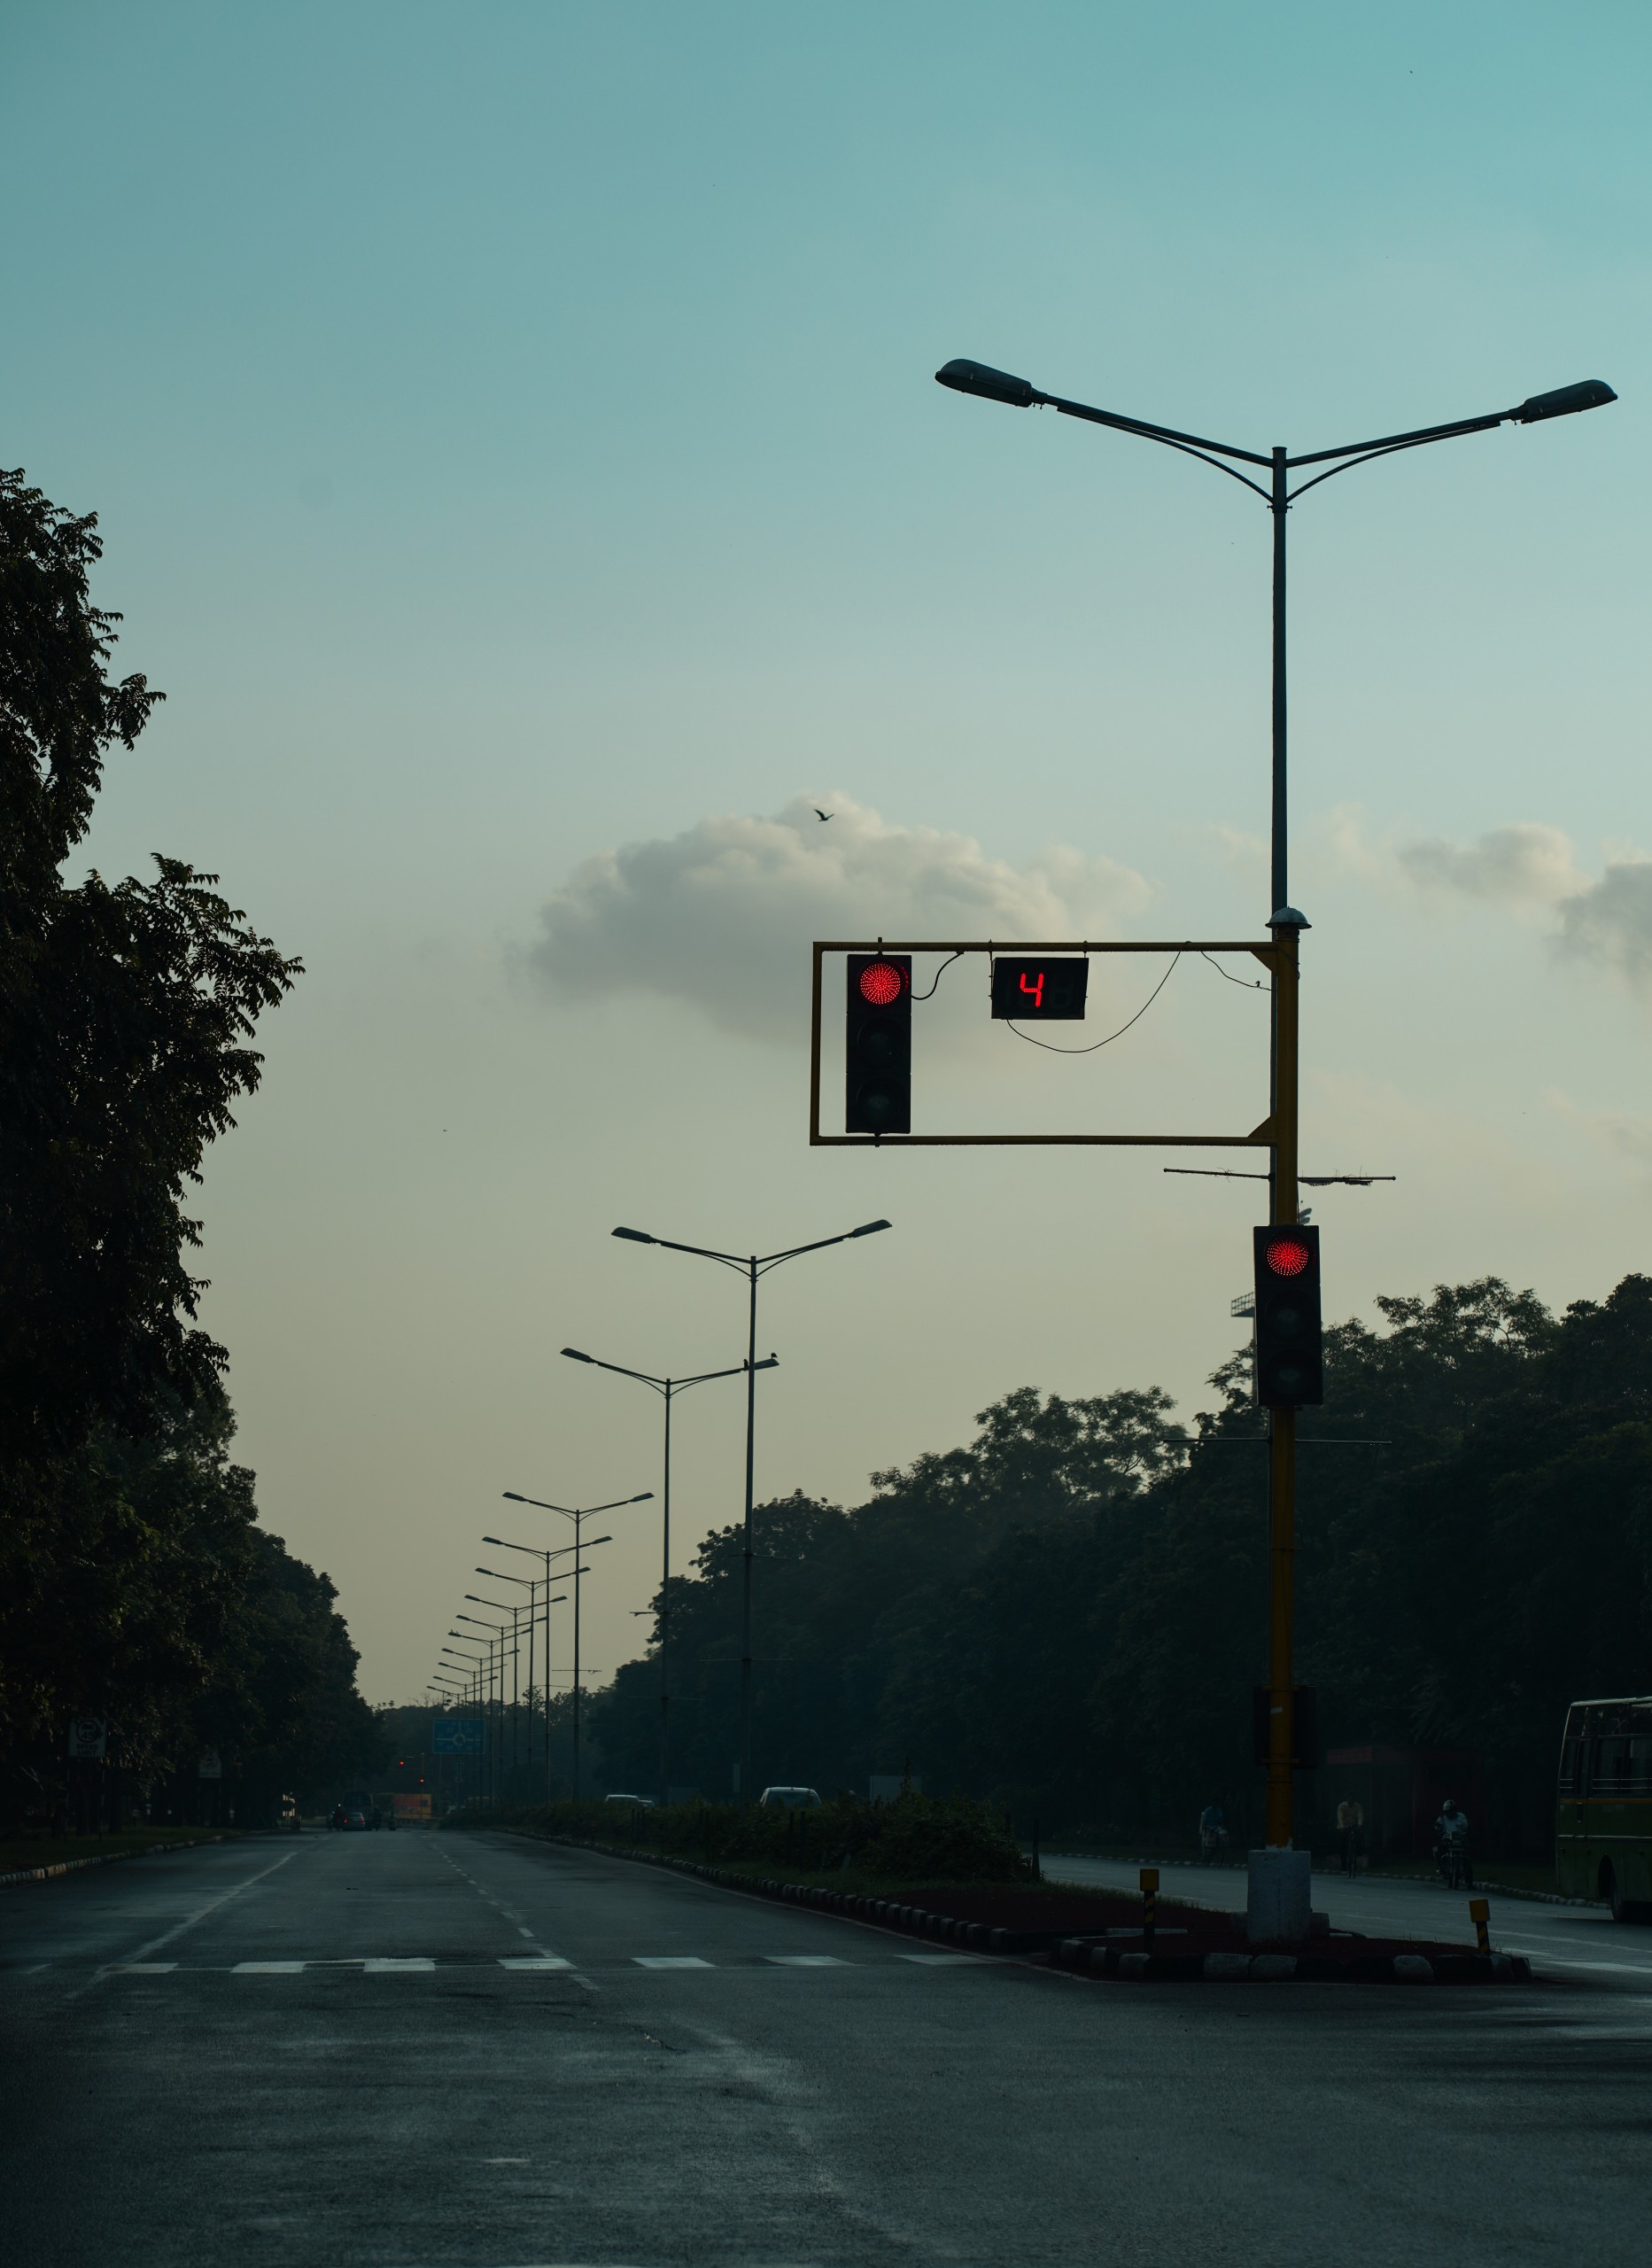 Evening View from road and traffic signal